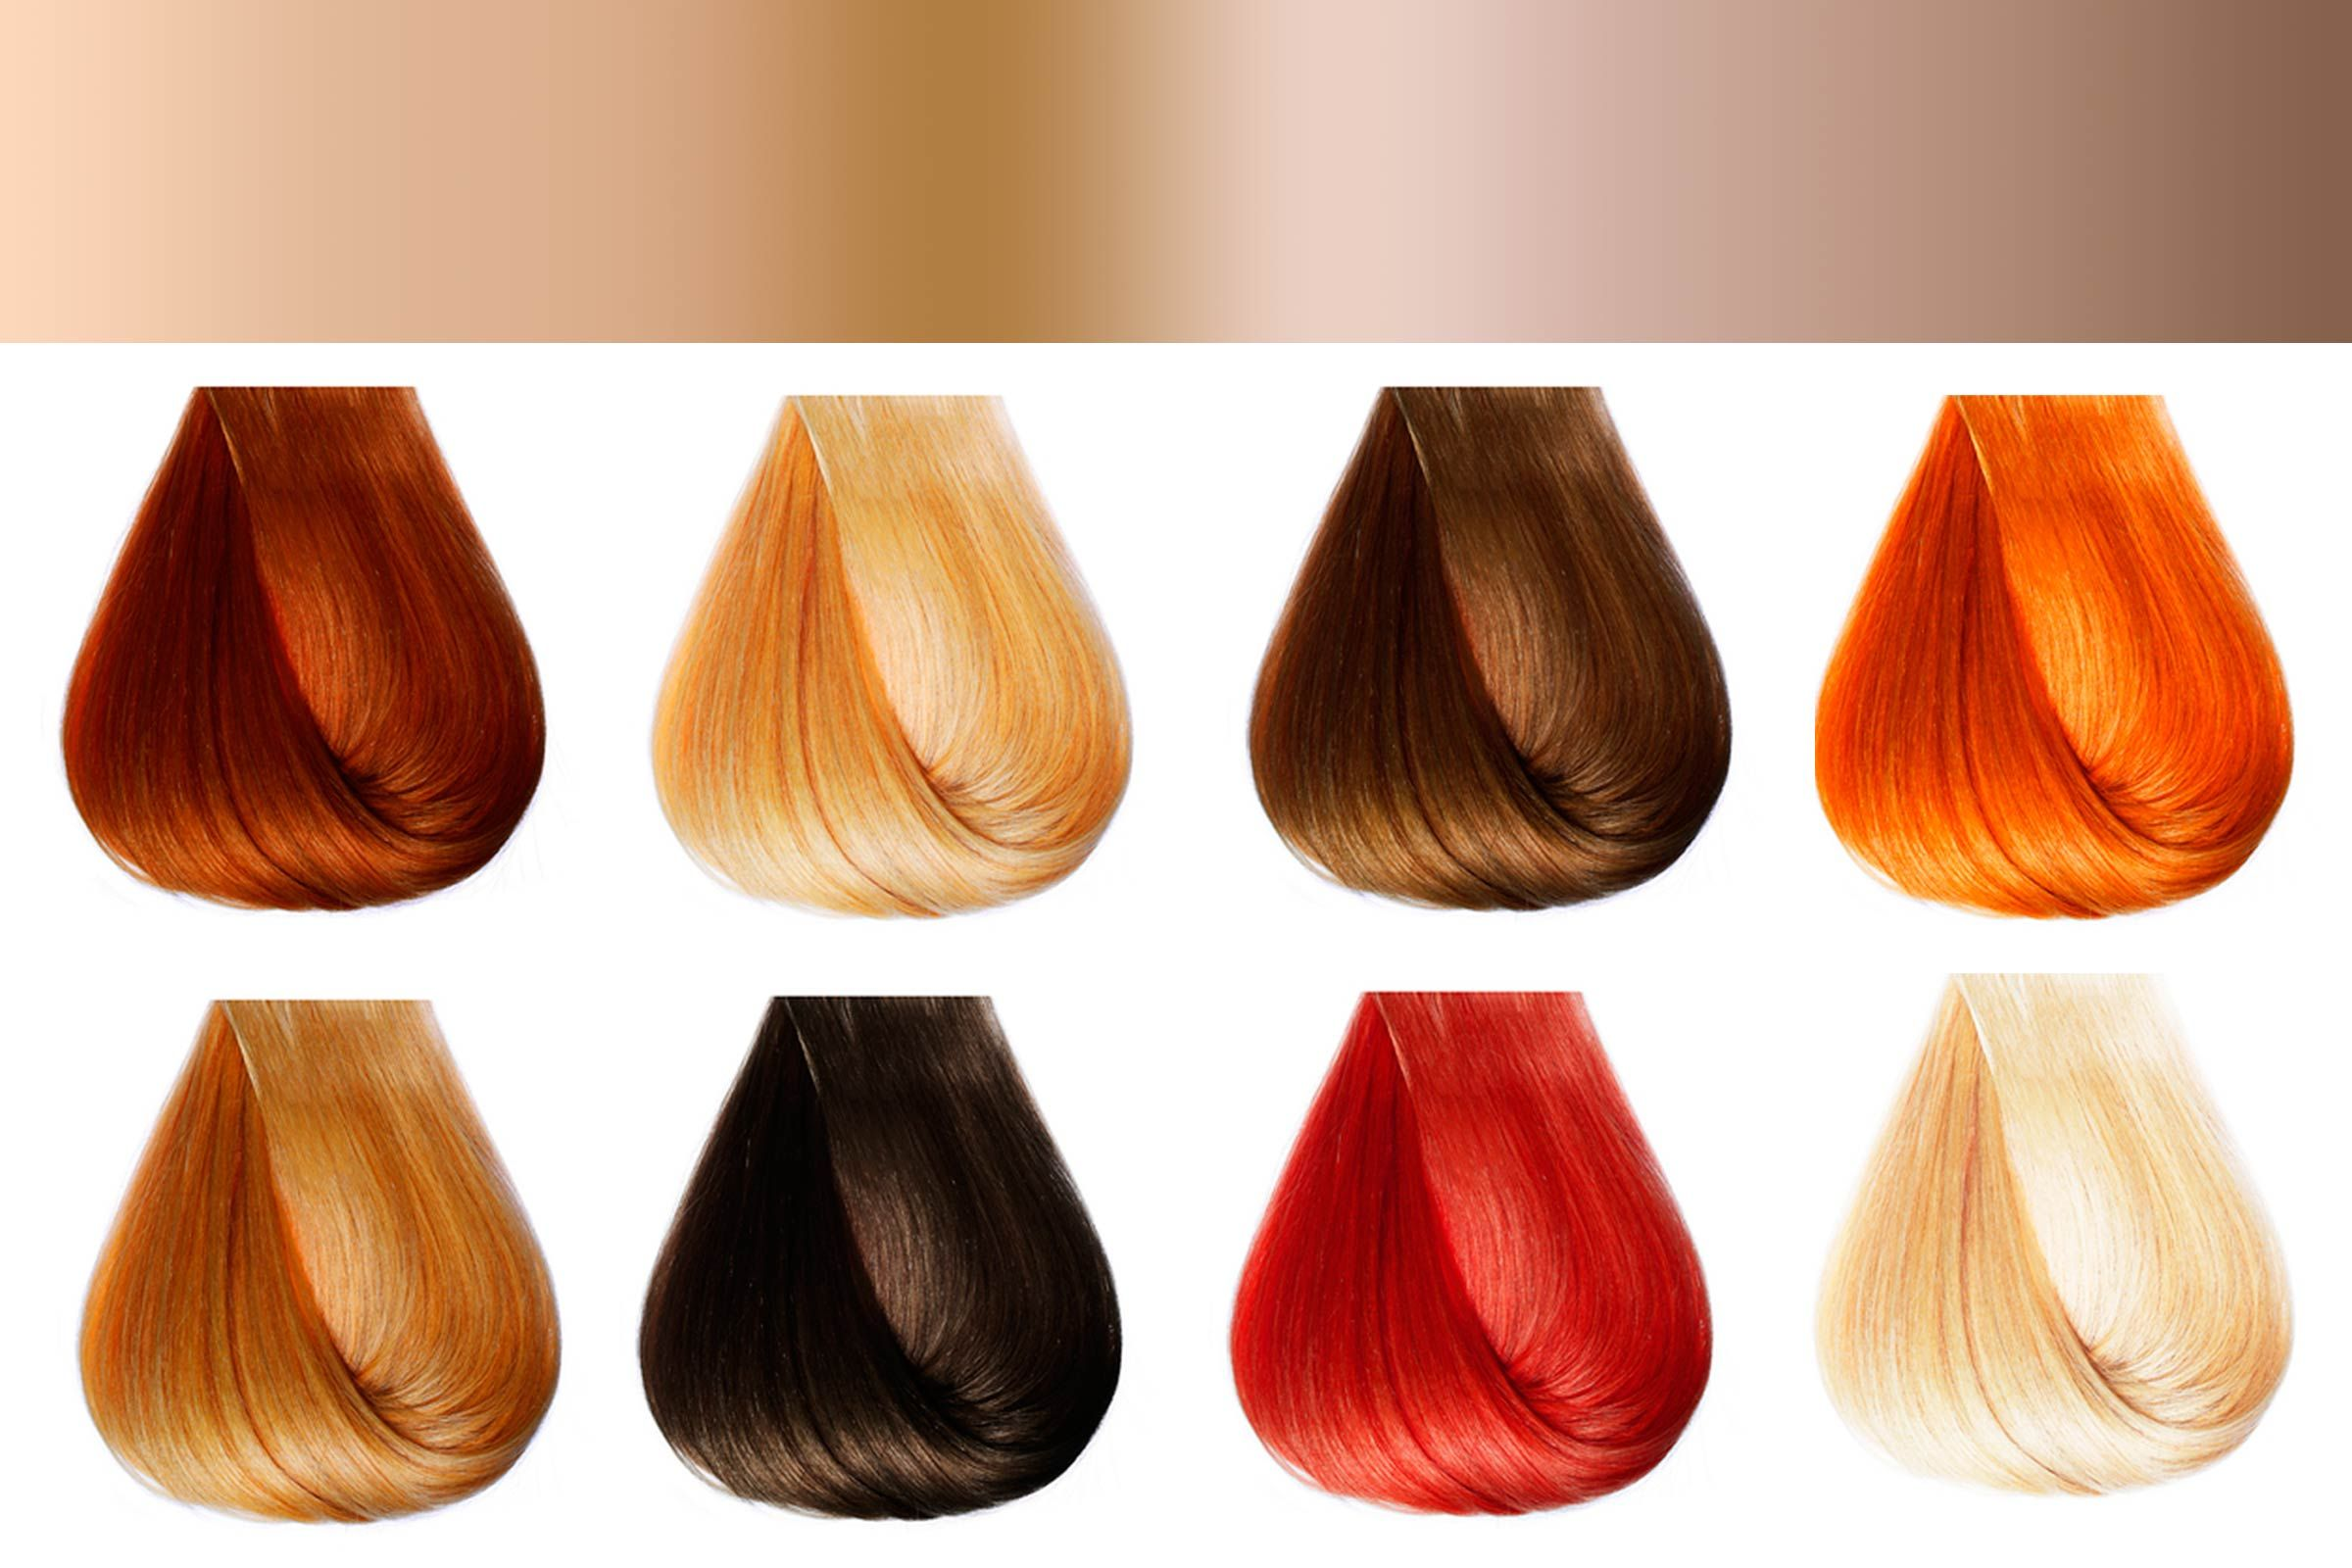 How To Find The Best Hair Color For Your Skin Tone Hair Color For Fair Skin Cool Hair Color Hair Colors For Blue Eyes